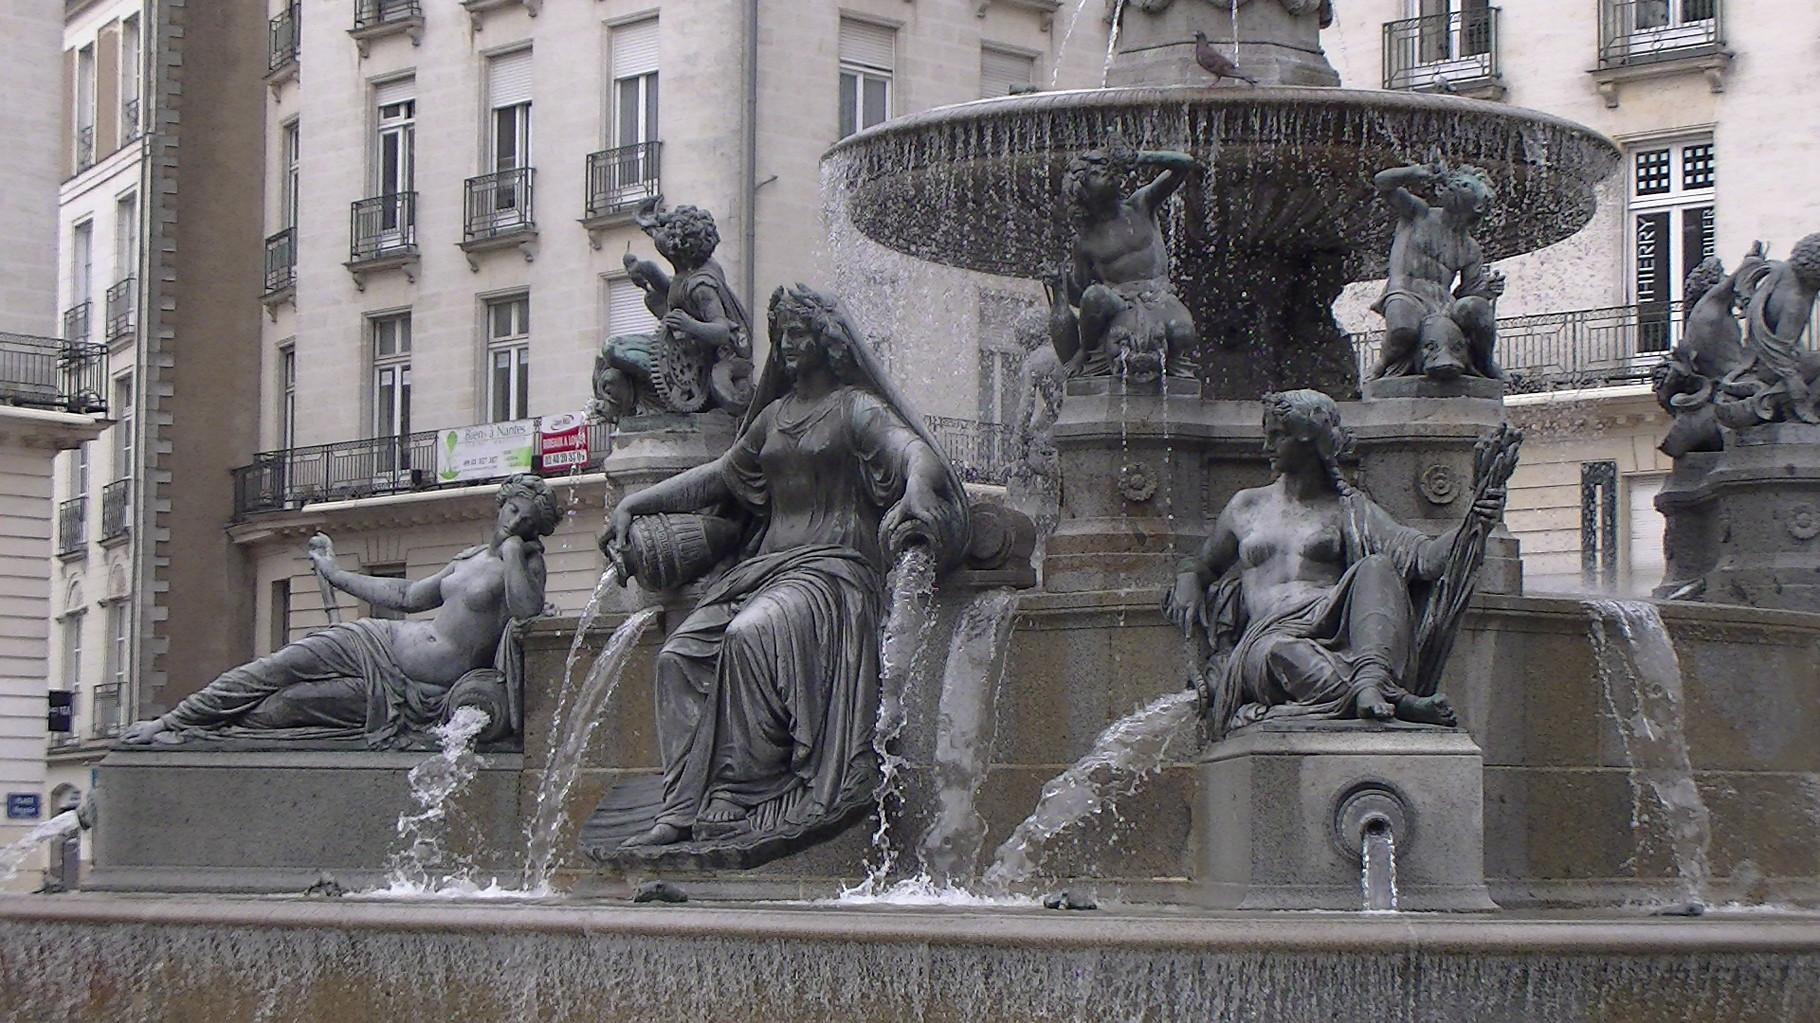 Nantes - Fontaine de la place royale